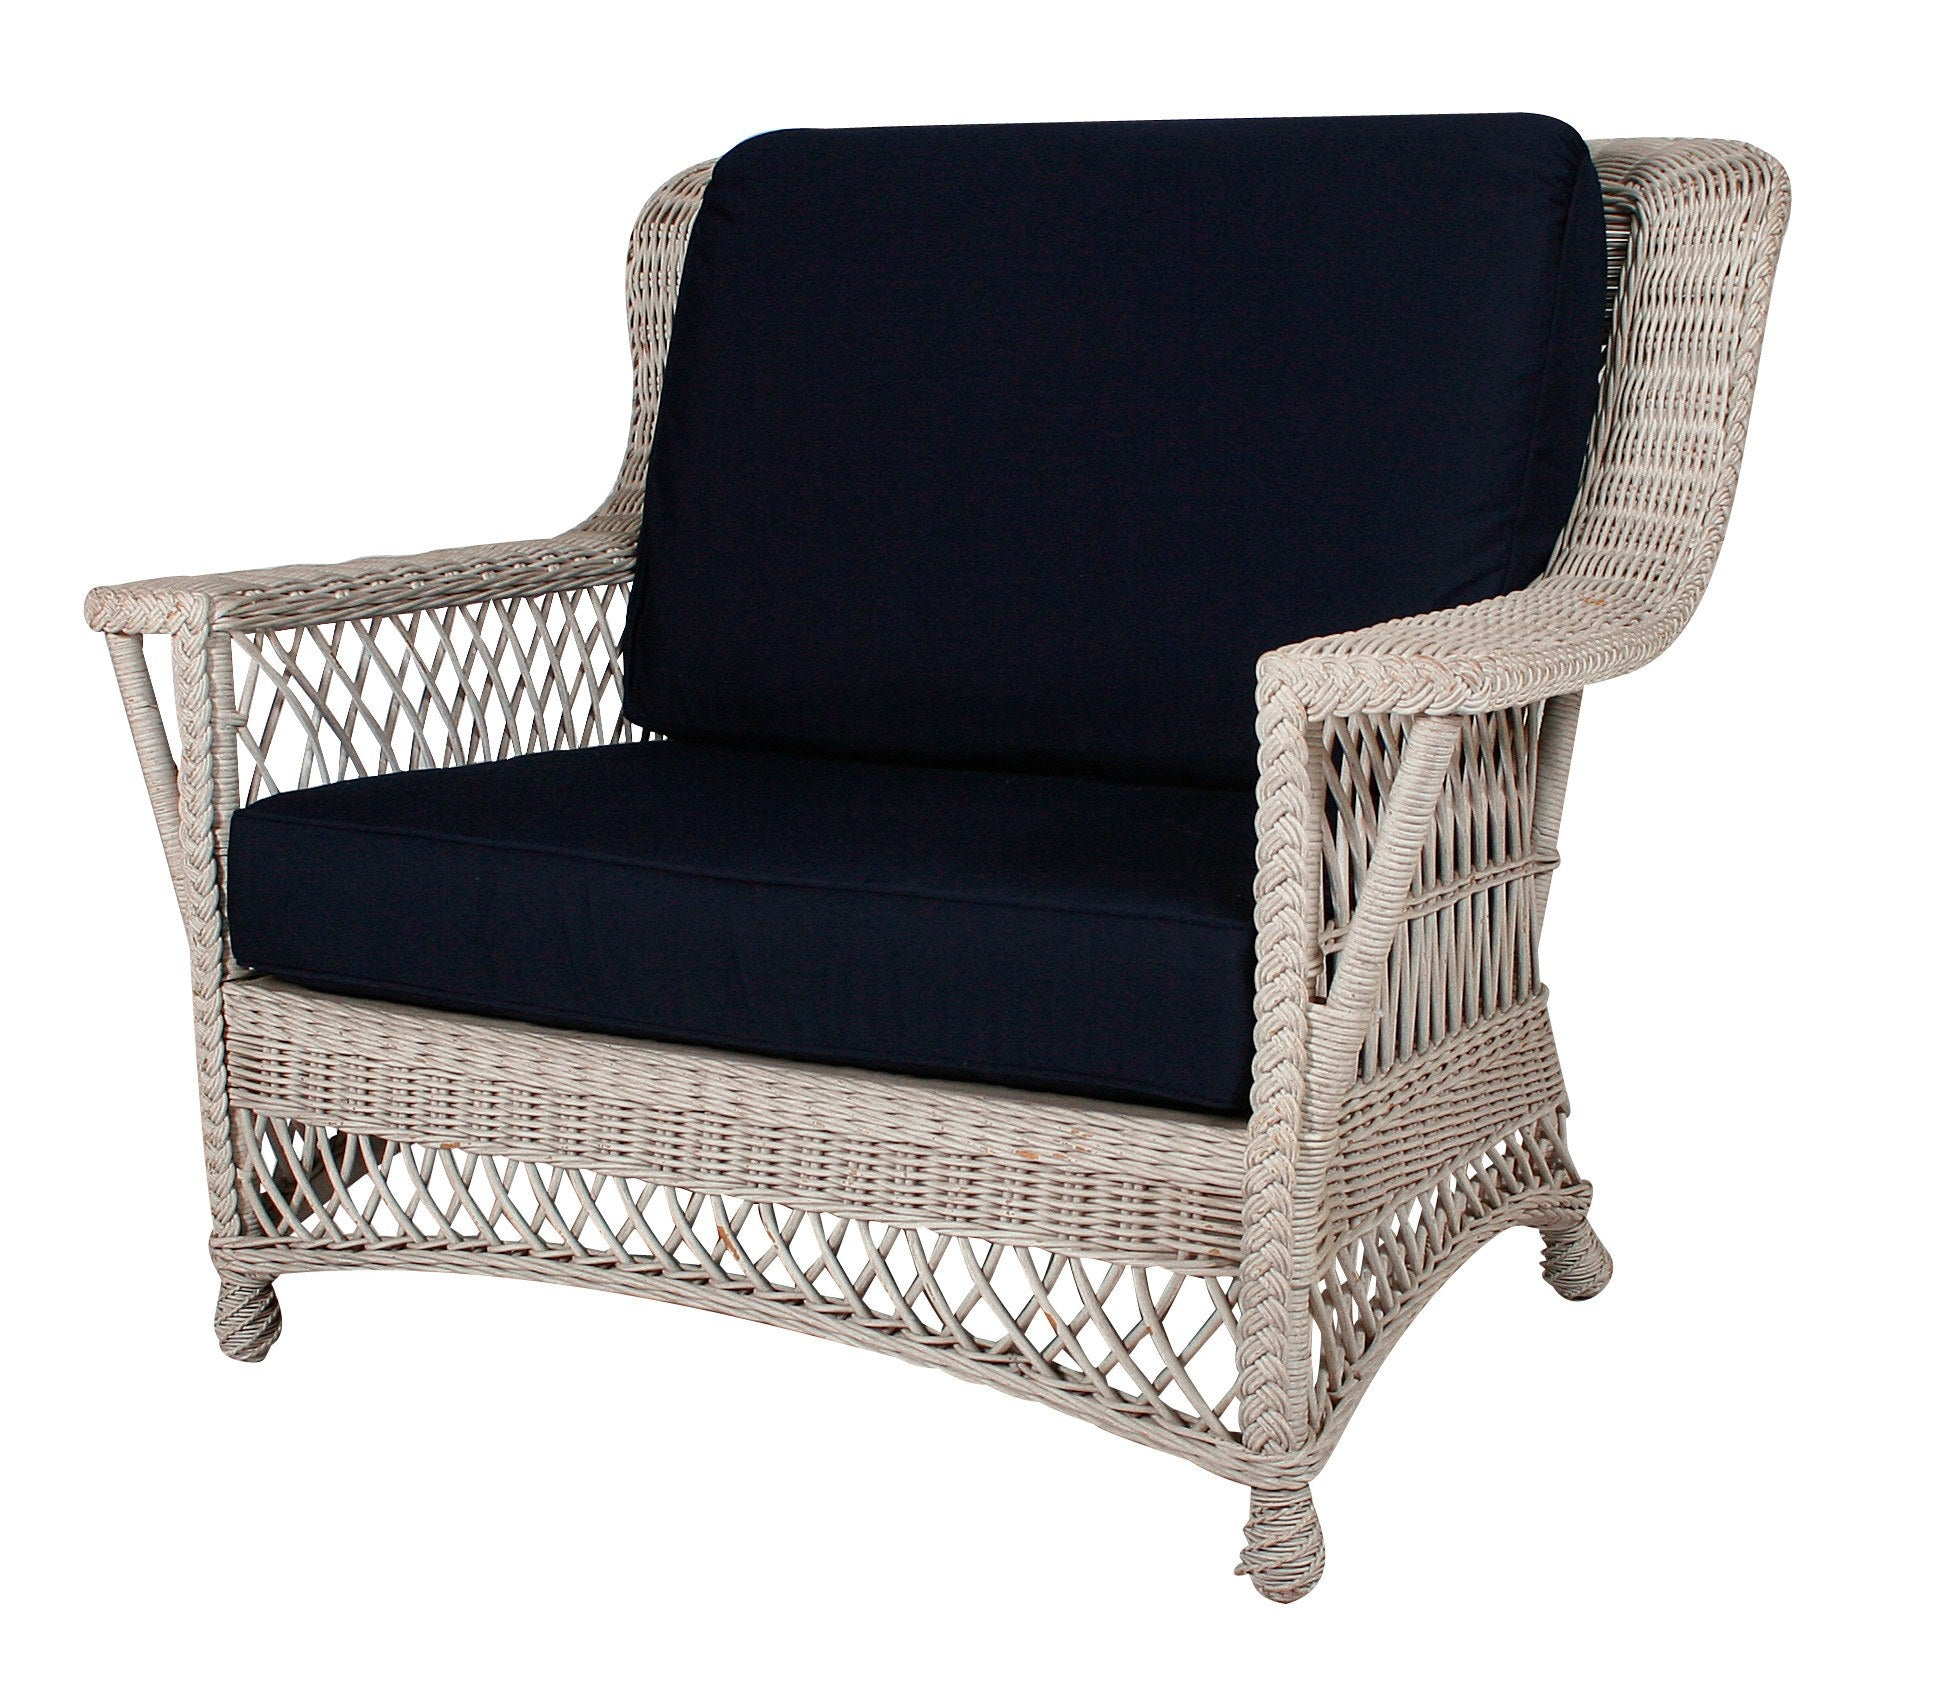 Designer Wicker & Rattan By Tribor Rockport Chair and a Half by Designer Wicker from Tribor Chair - Rattan Imports